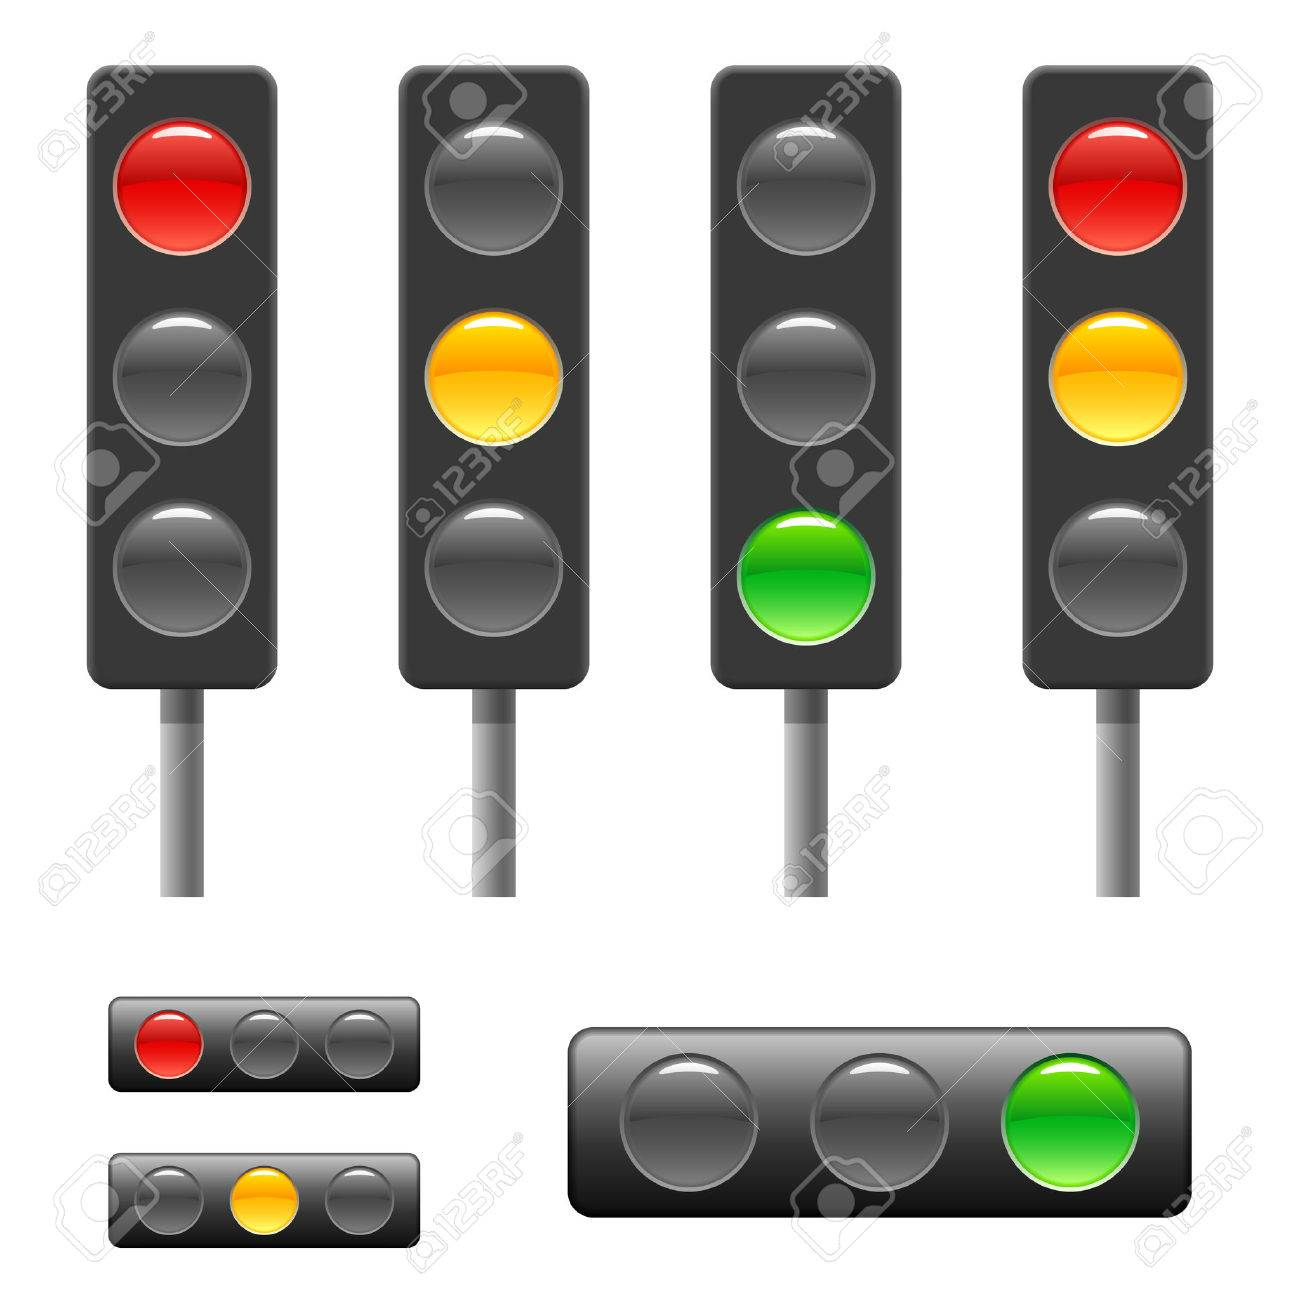 Great Traffic Light U0026 Status Bar Stock Vector   6425466 Design